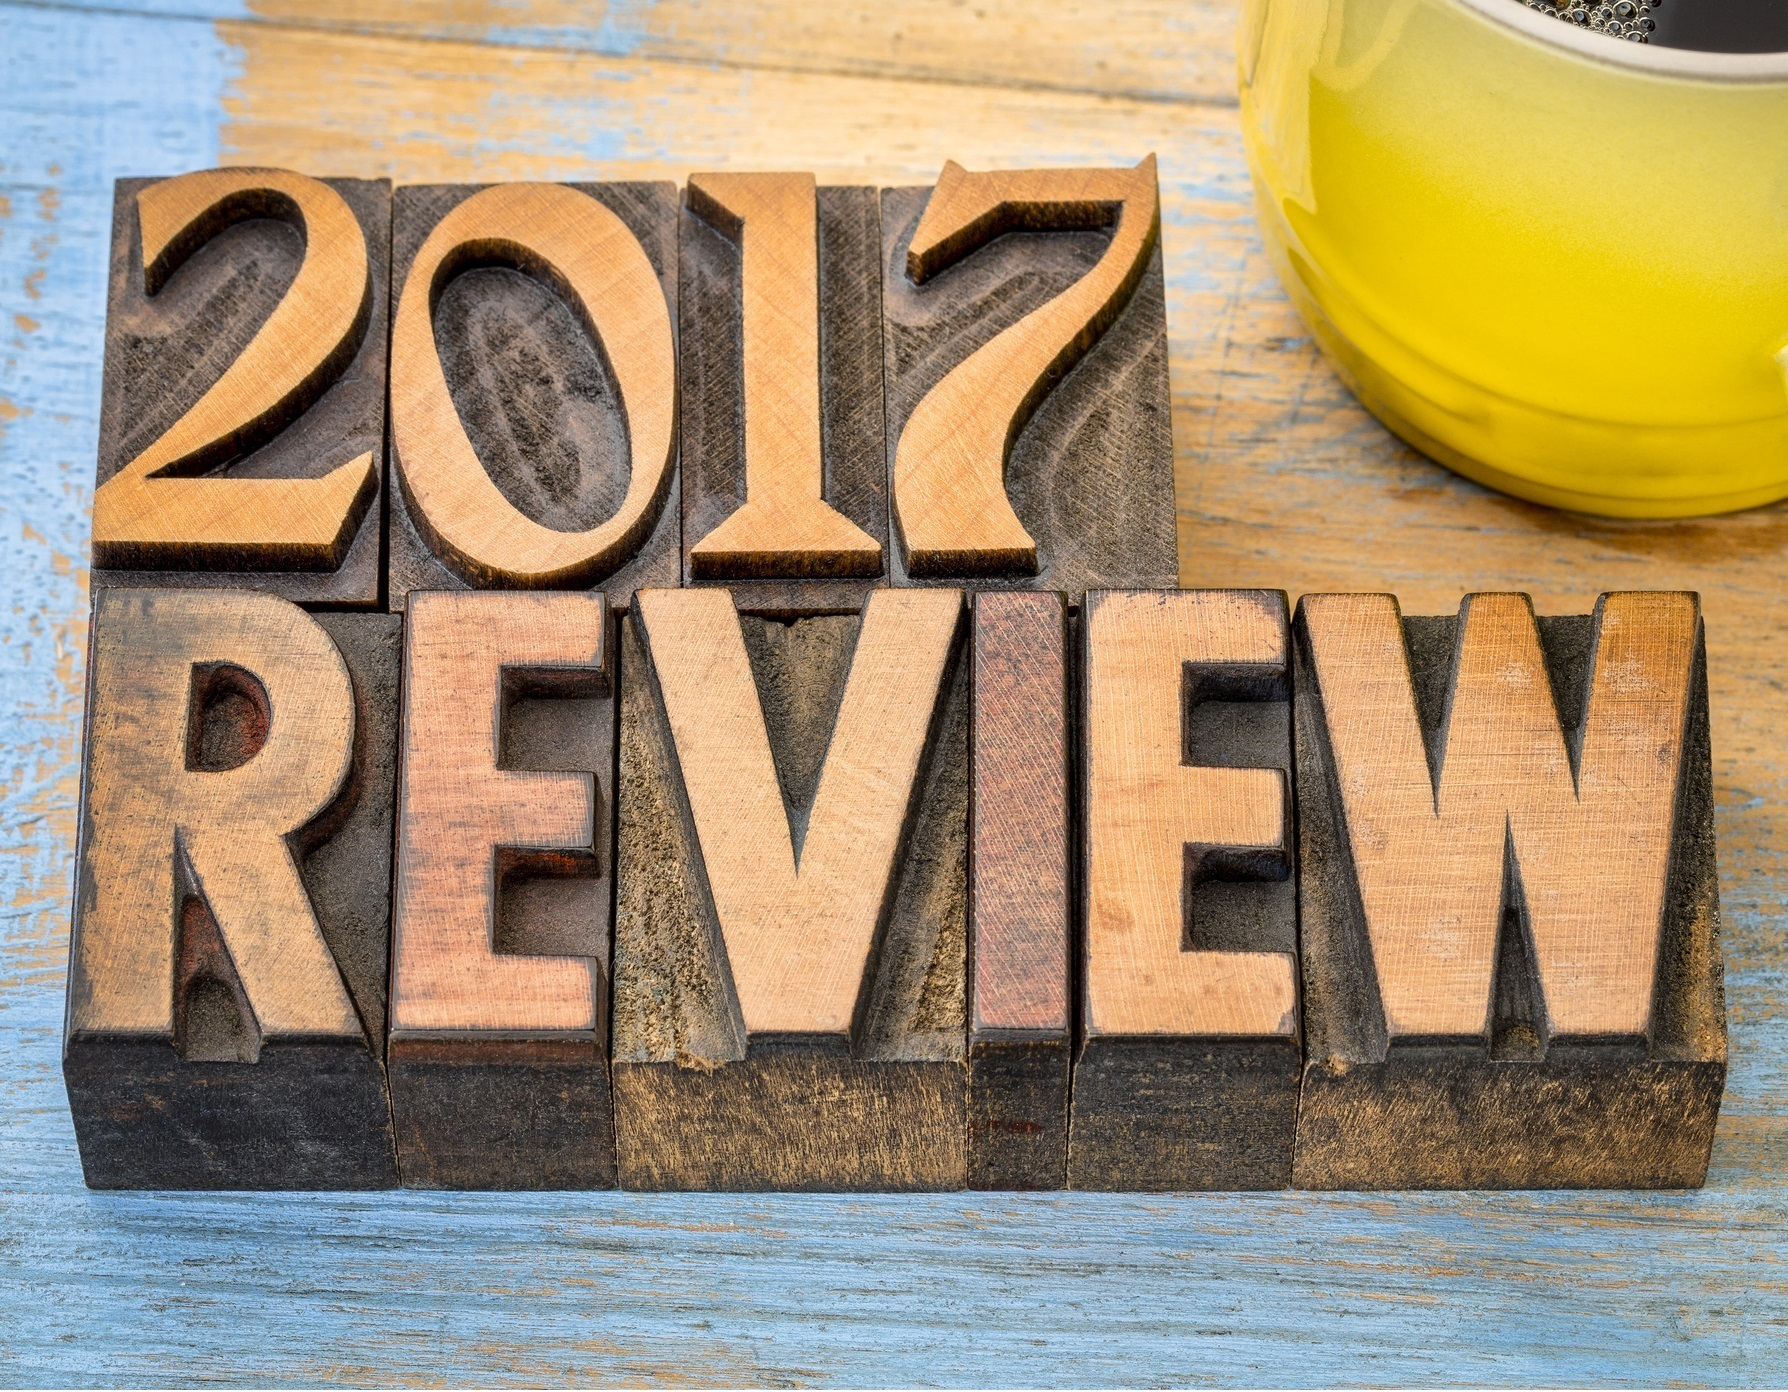 2017 in review cropped 2